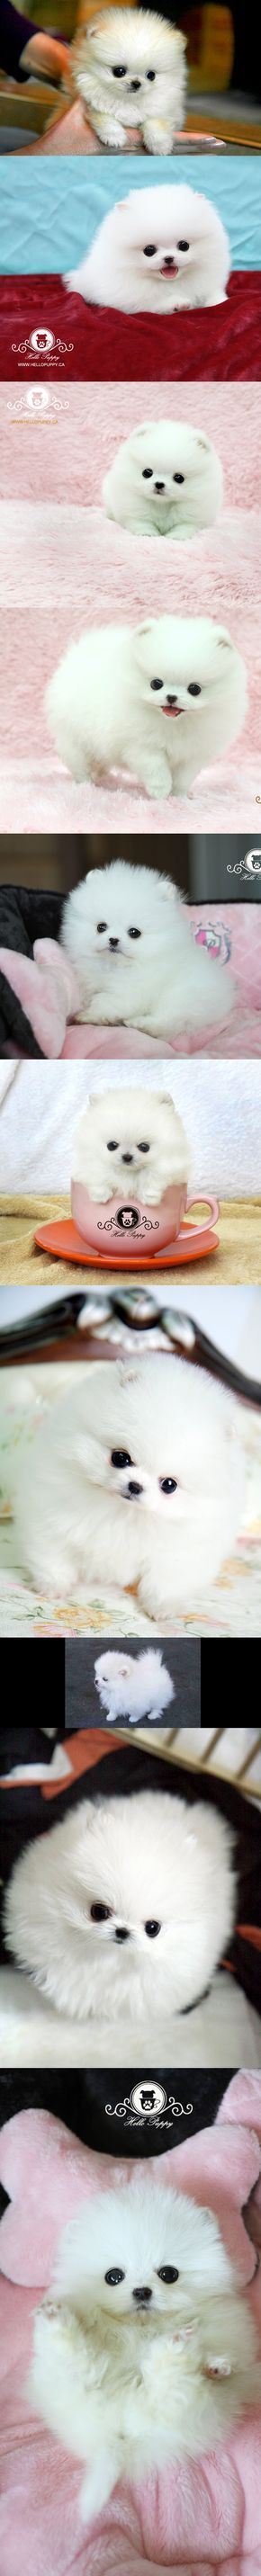 Teacup micro Pomeranian puppies/ I surrender my soul to you that is how cute you are!